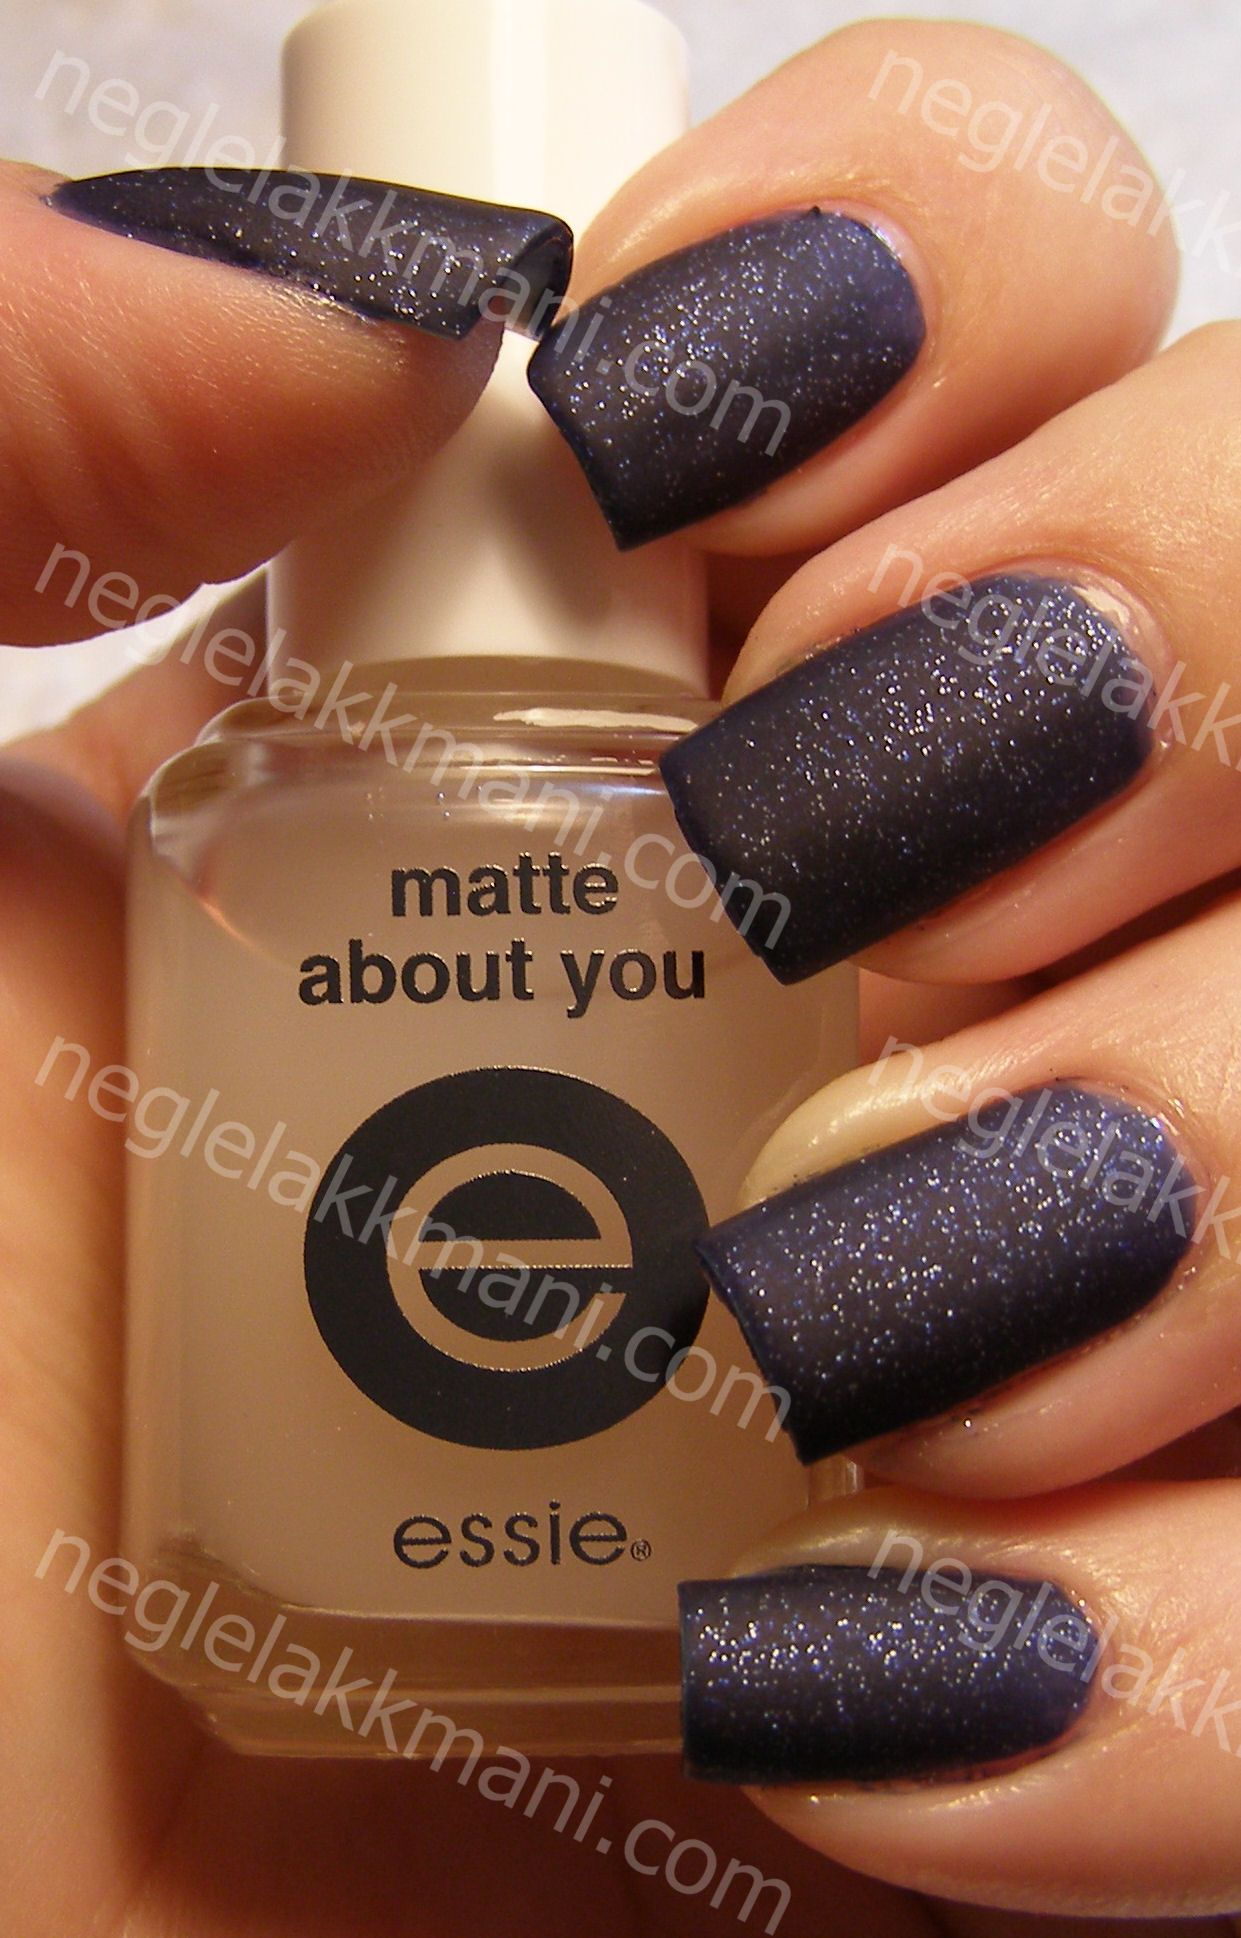 Essie Starry Starry Night & Essie Matte About You